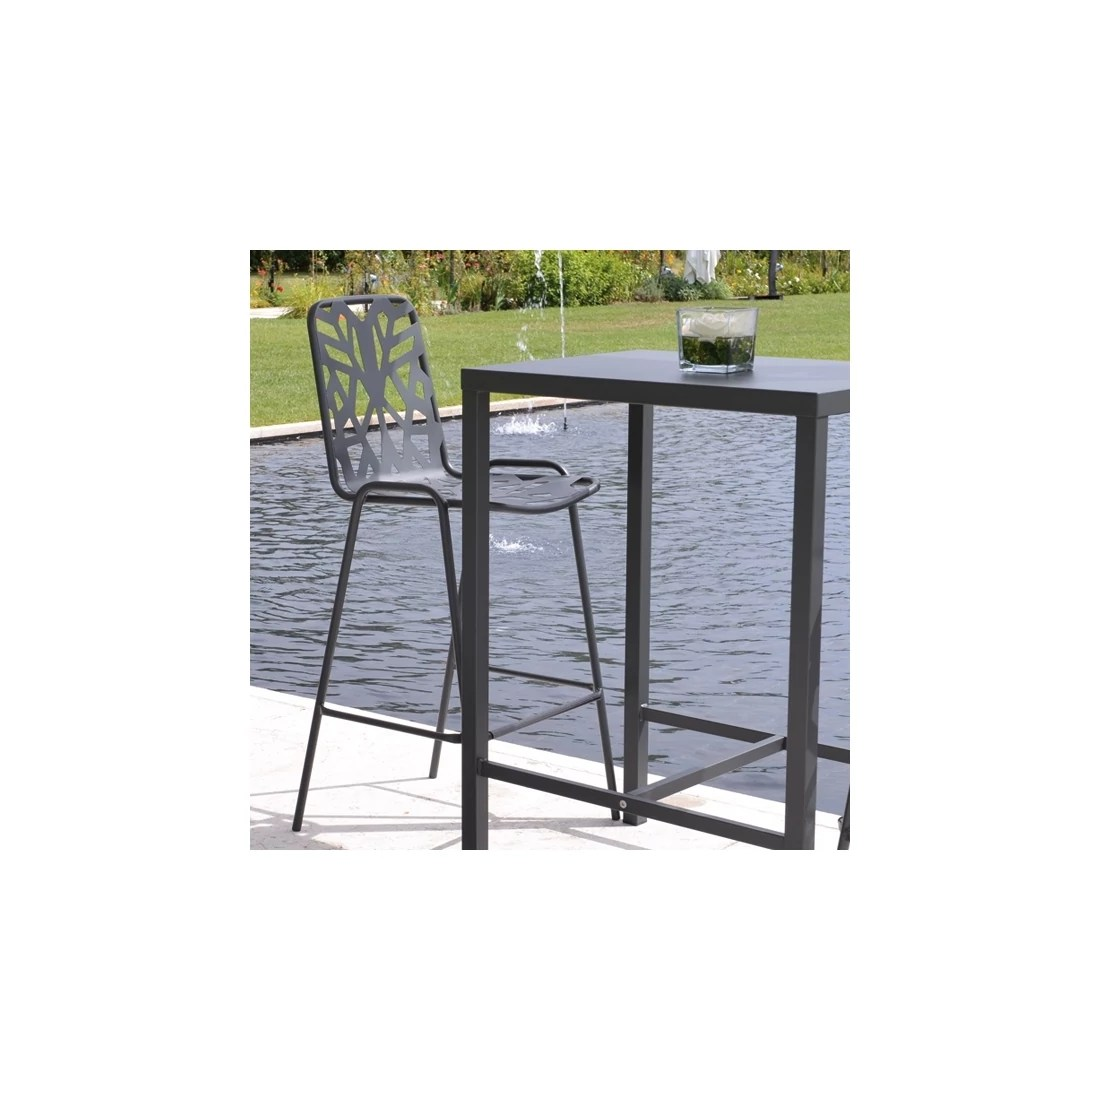 Tabouret De Bar Design Italien Tabouret De Bar Design Italien Tabouret De Bar Design La